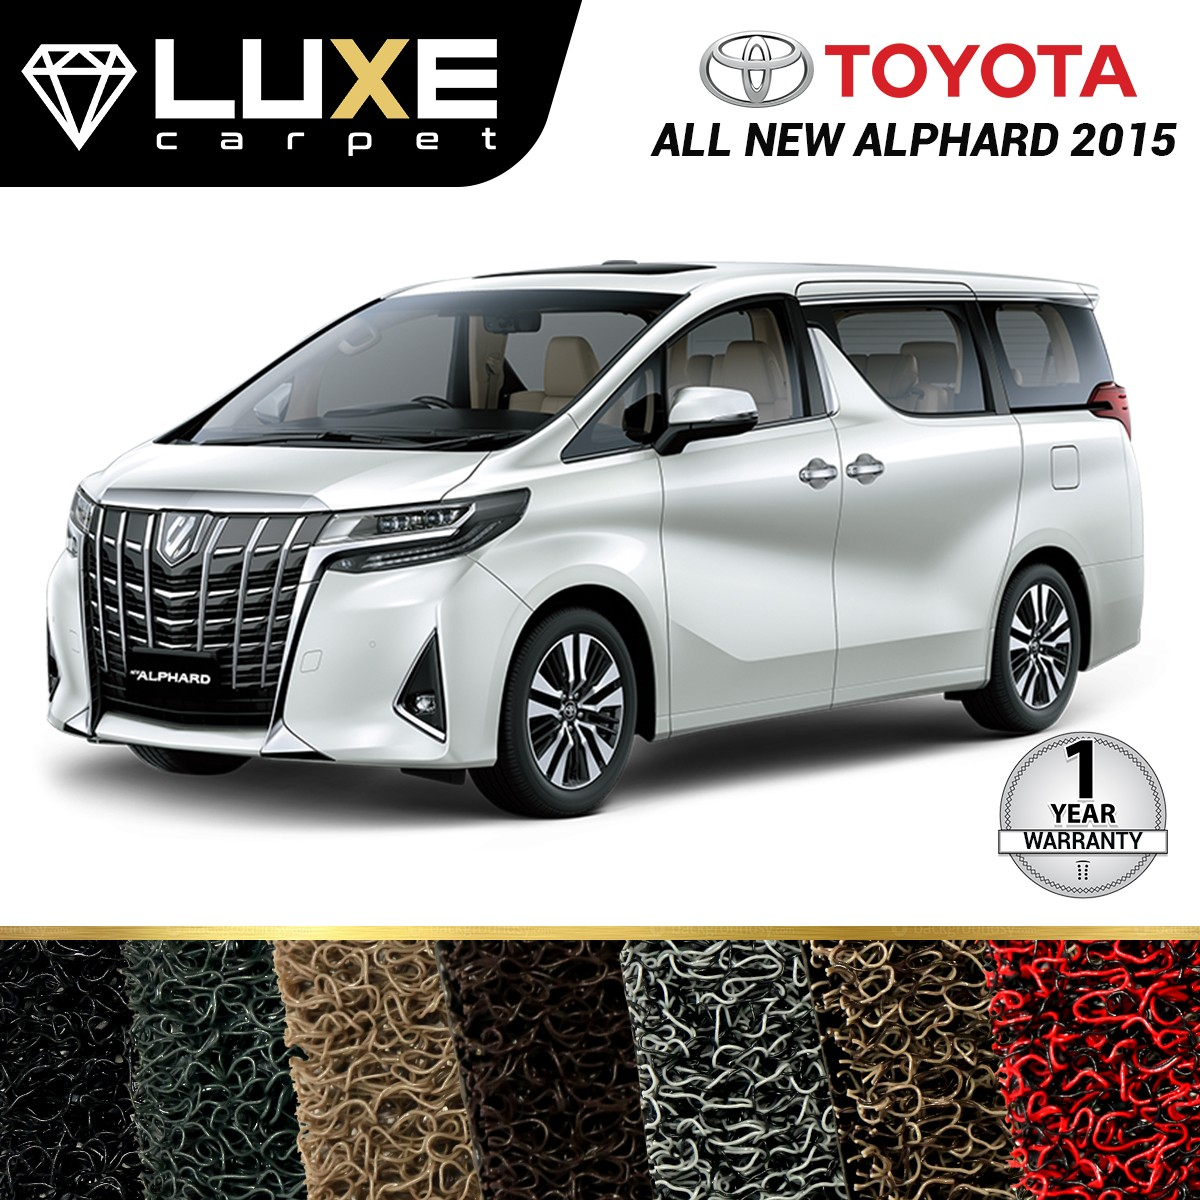 KARPET LUXE + BAGASI TOYOTA ALL NEW ALPHARD 2015 UP  - GOLD SERIES